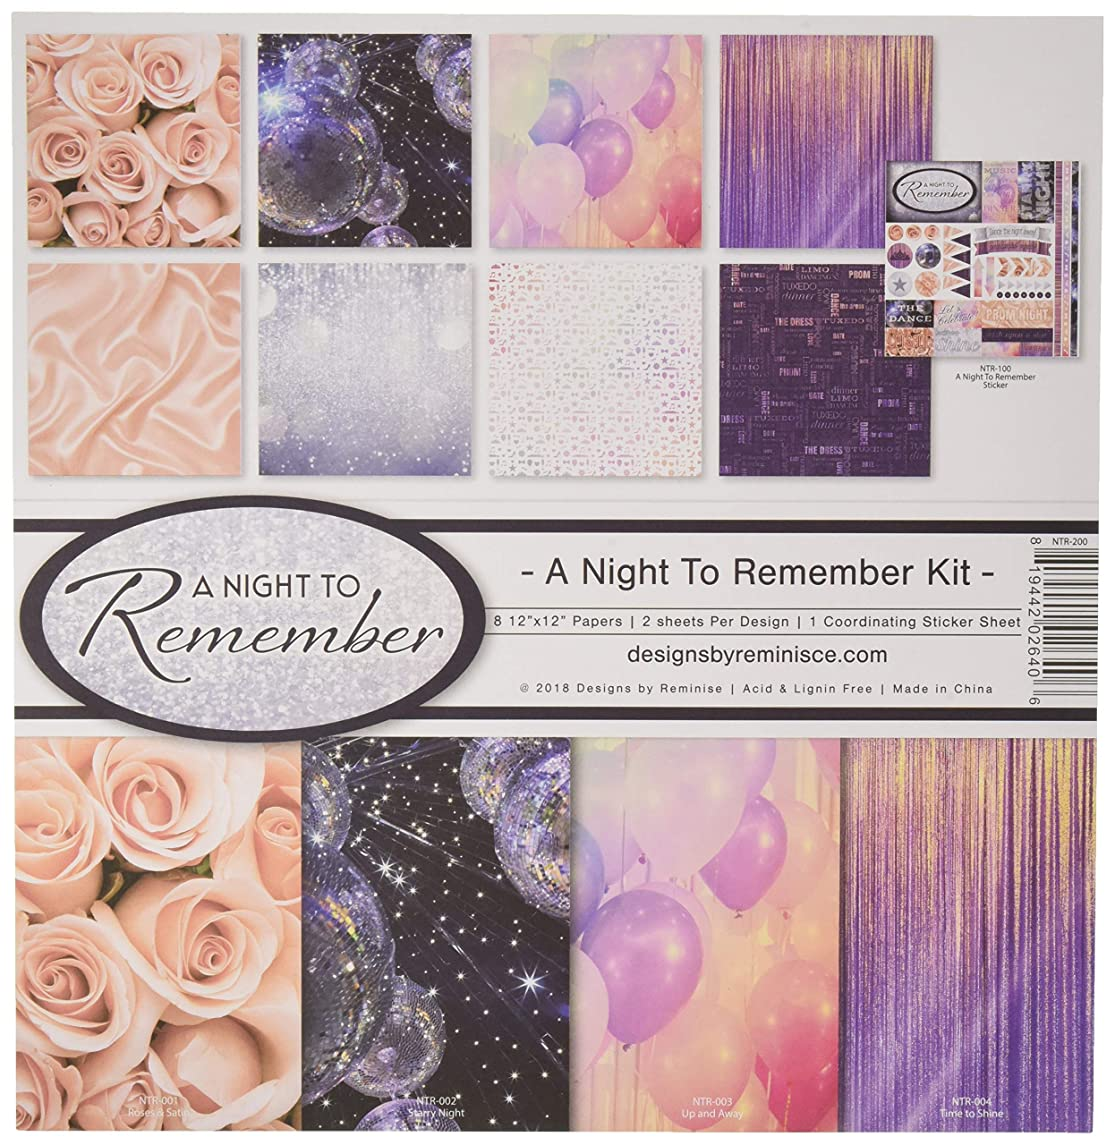 Reminisce (REMBC) NTR-200 A Night to Remember Scrapbook Collection Kit, Multi Color Palette